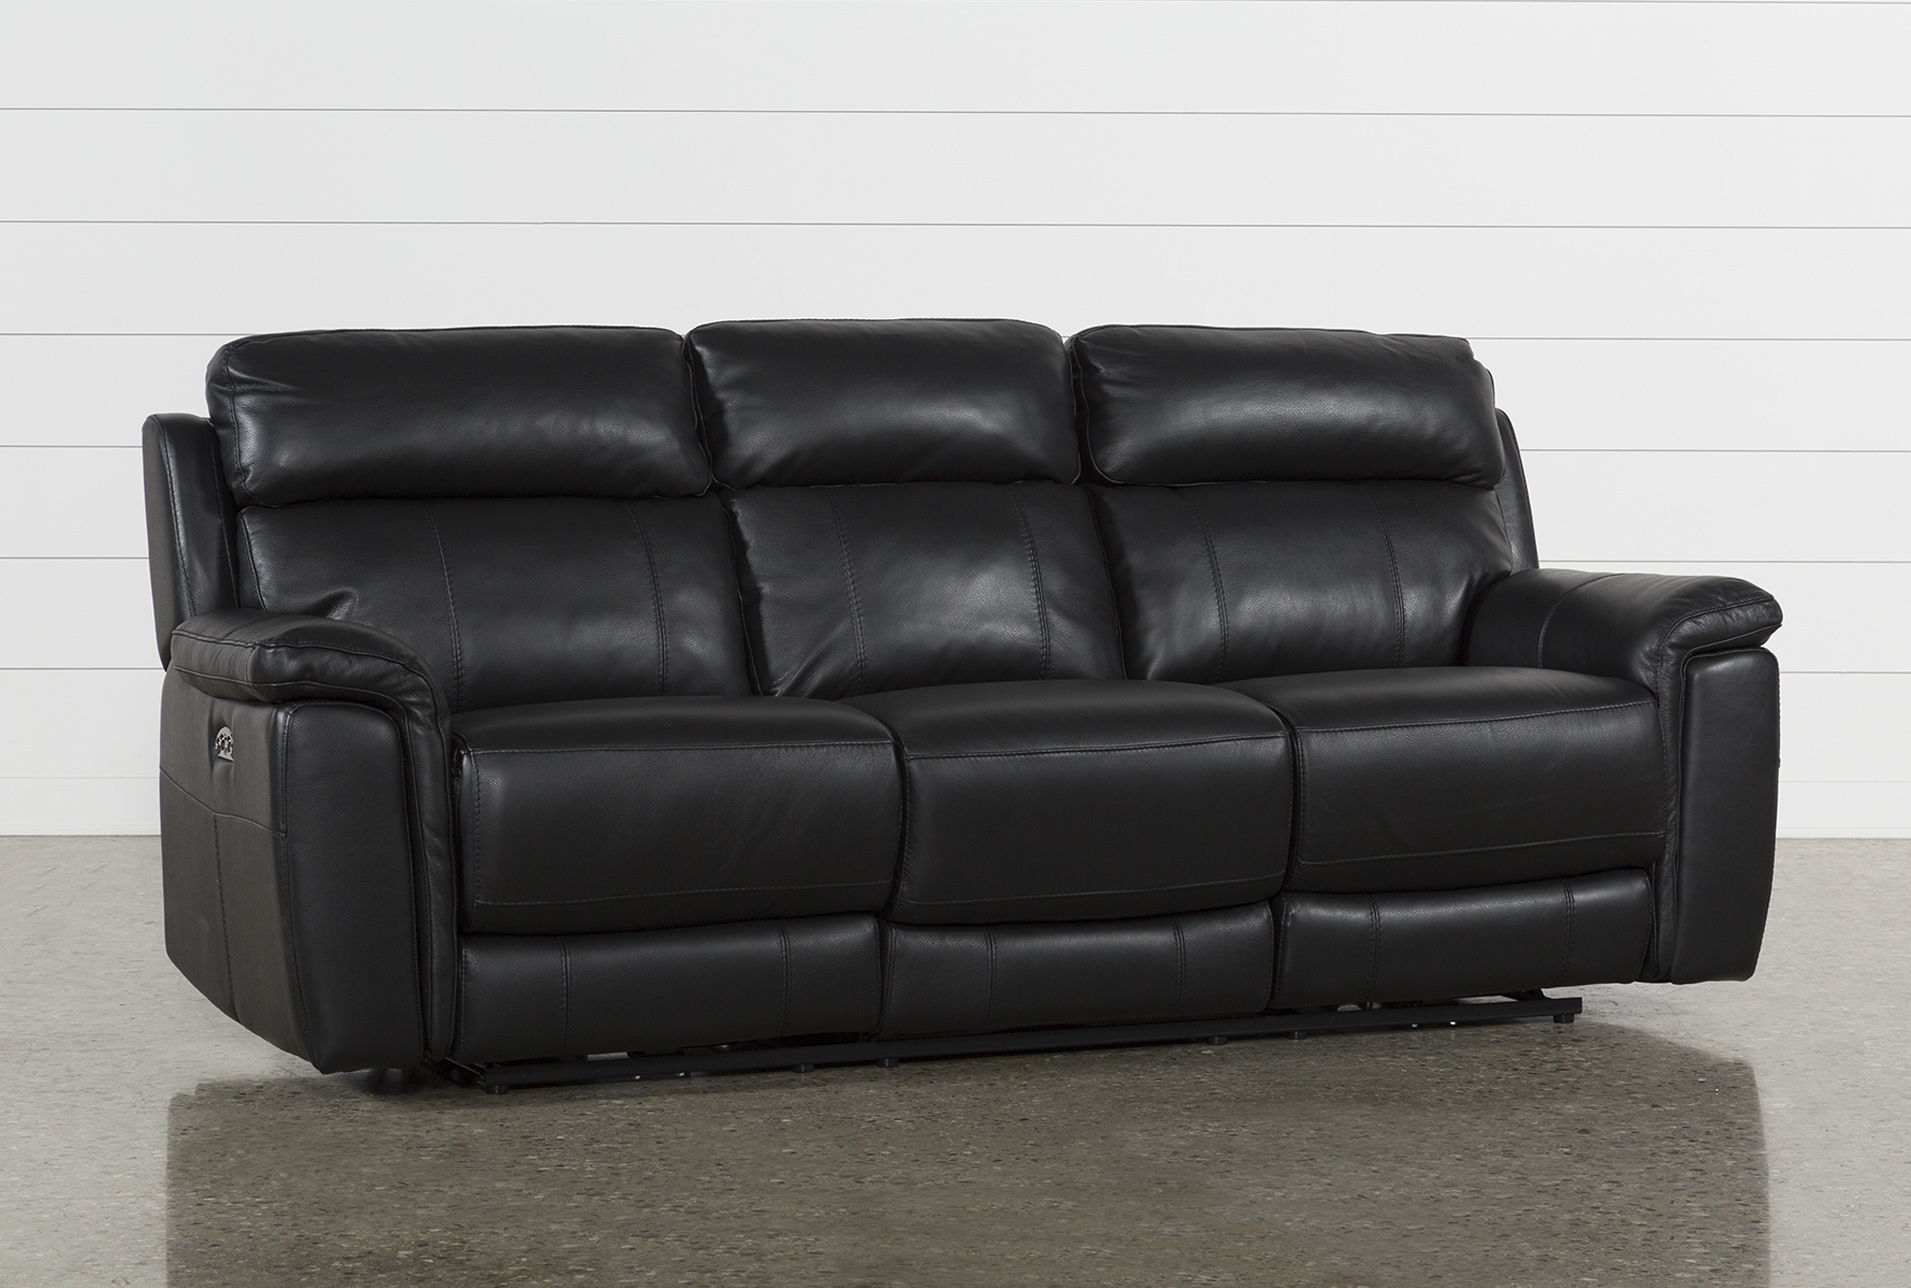 Dino Black Leather Power Reclining Sofa W Power Headrest Usb